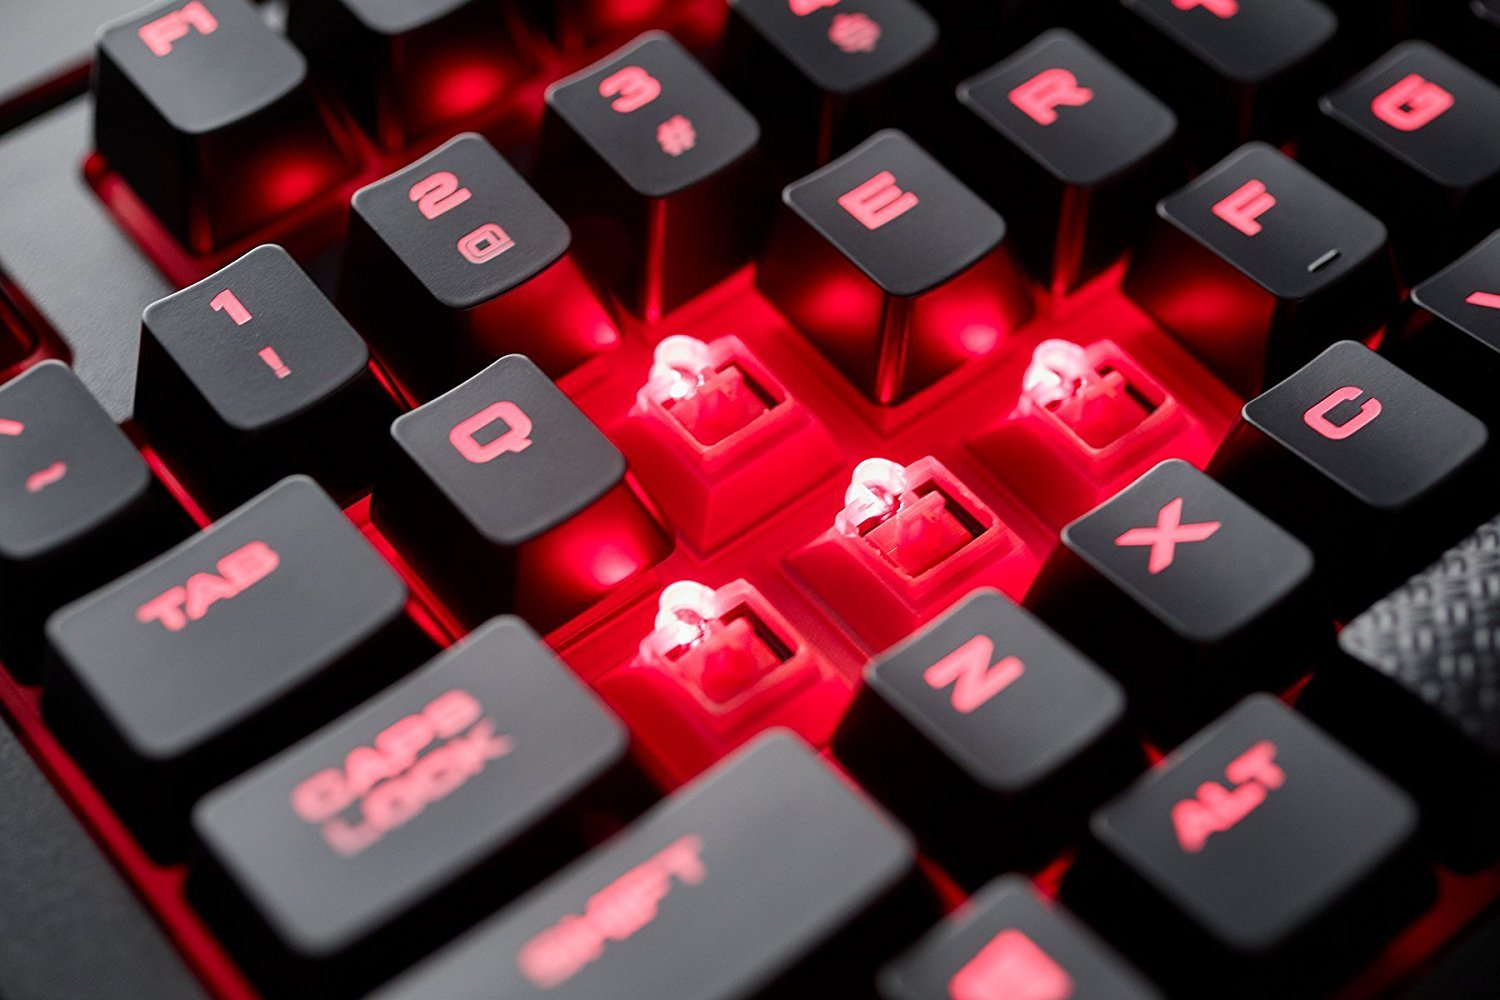 Corsair K68 Mechanical Gaming Keyboard (Cherry MX Red) for PC Games image